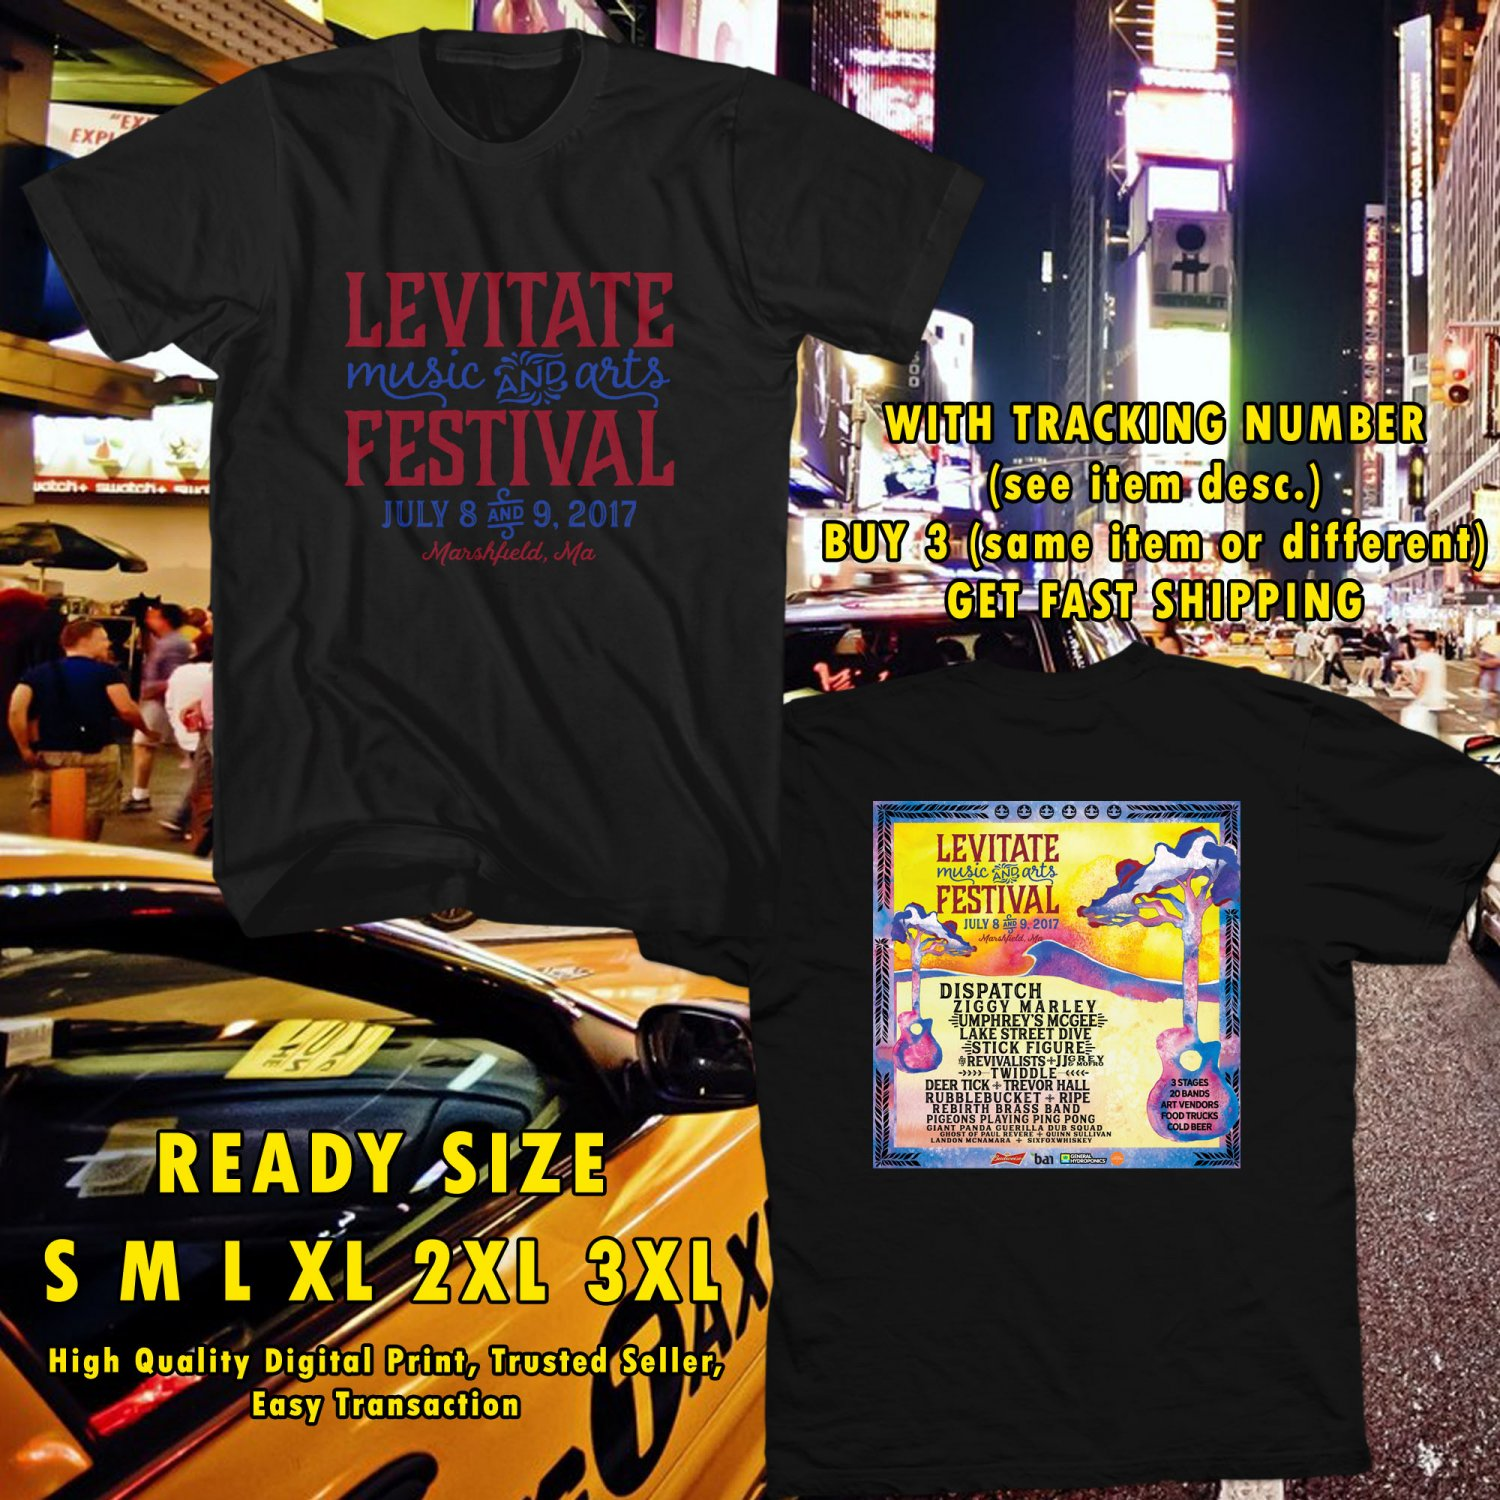 HITS LEVITATE FEST ON JULY 2017 BLACK TEE'S 2SIDE MAN WOMEN ASTR 665